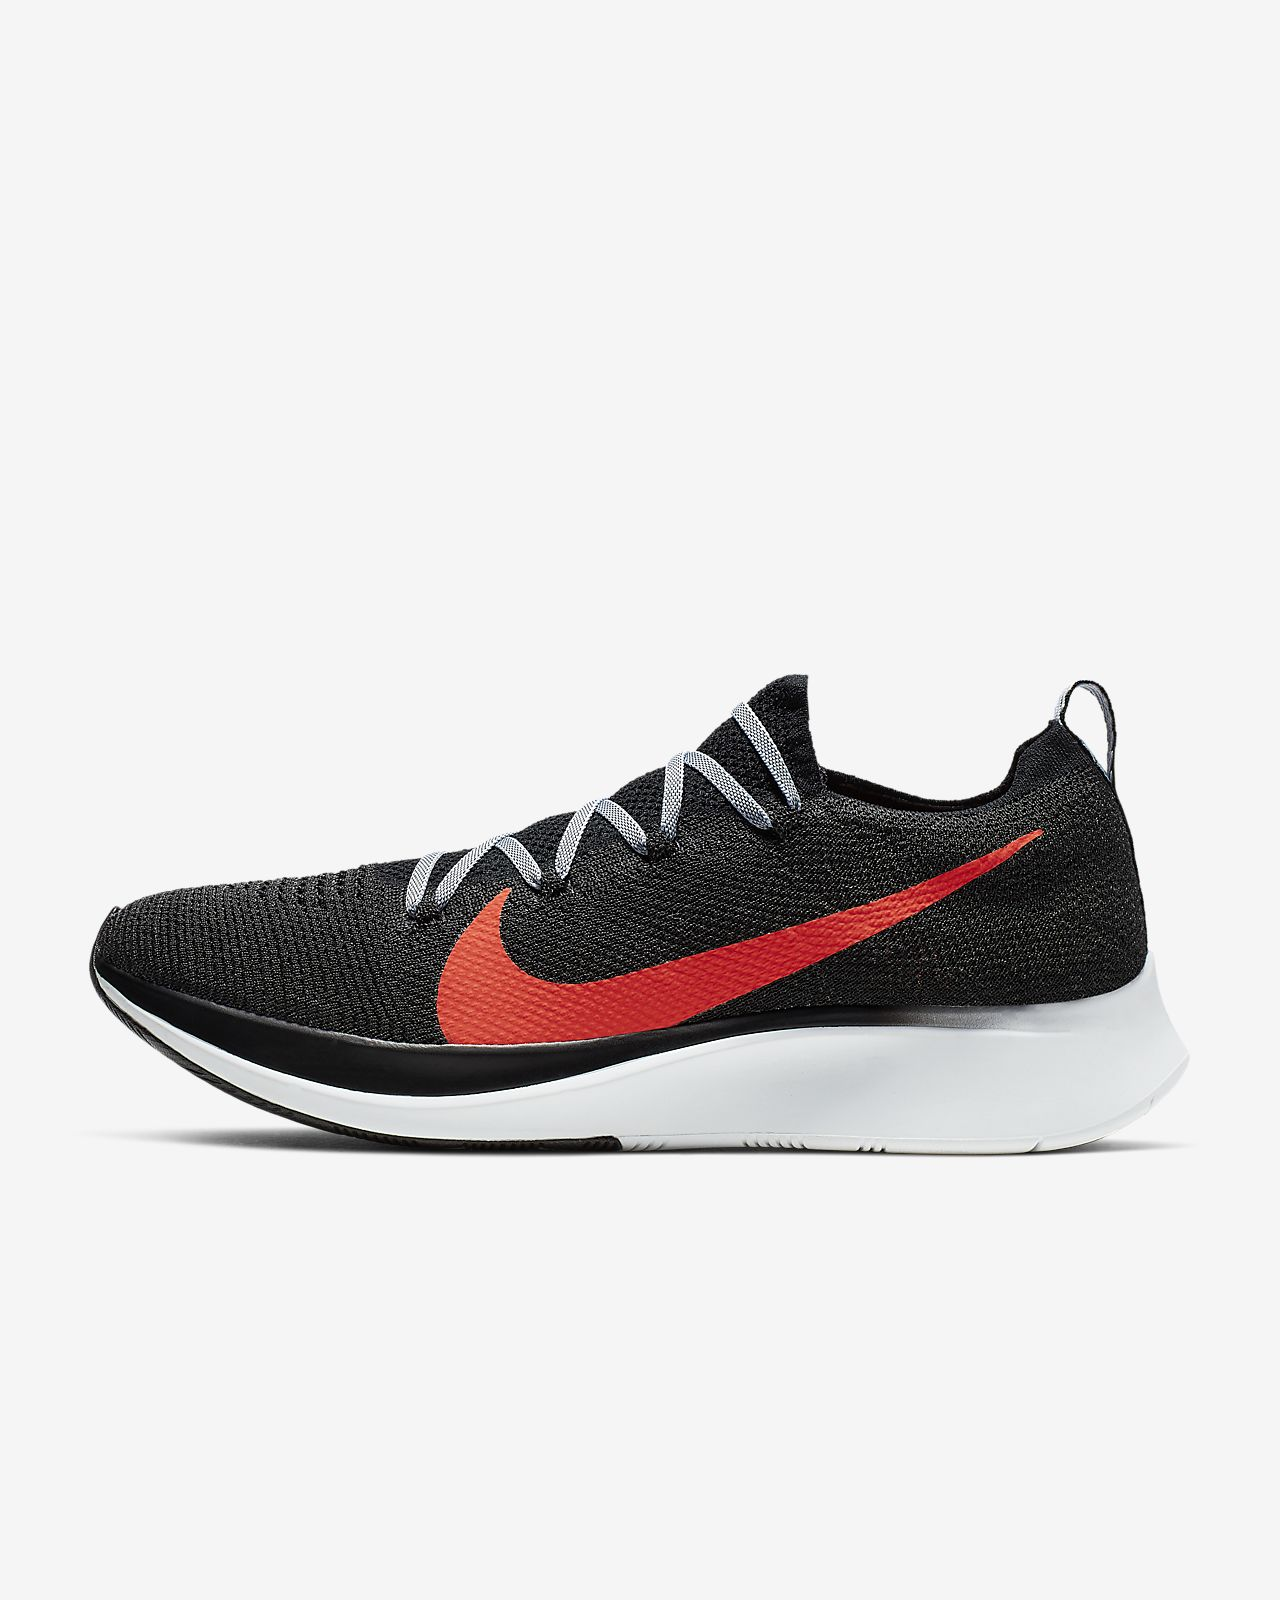 56507500d9ee Nike Zoom Fly Flyknit Men s Running Shoe. Nike.com